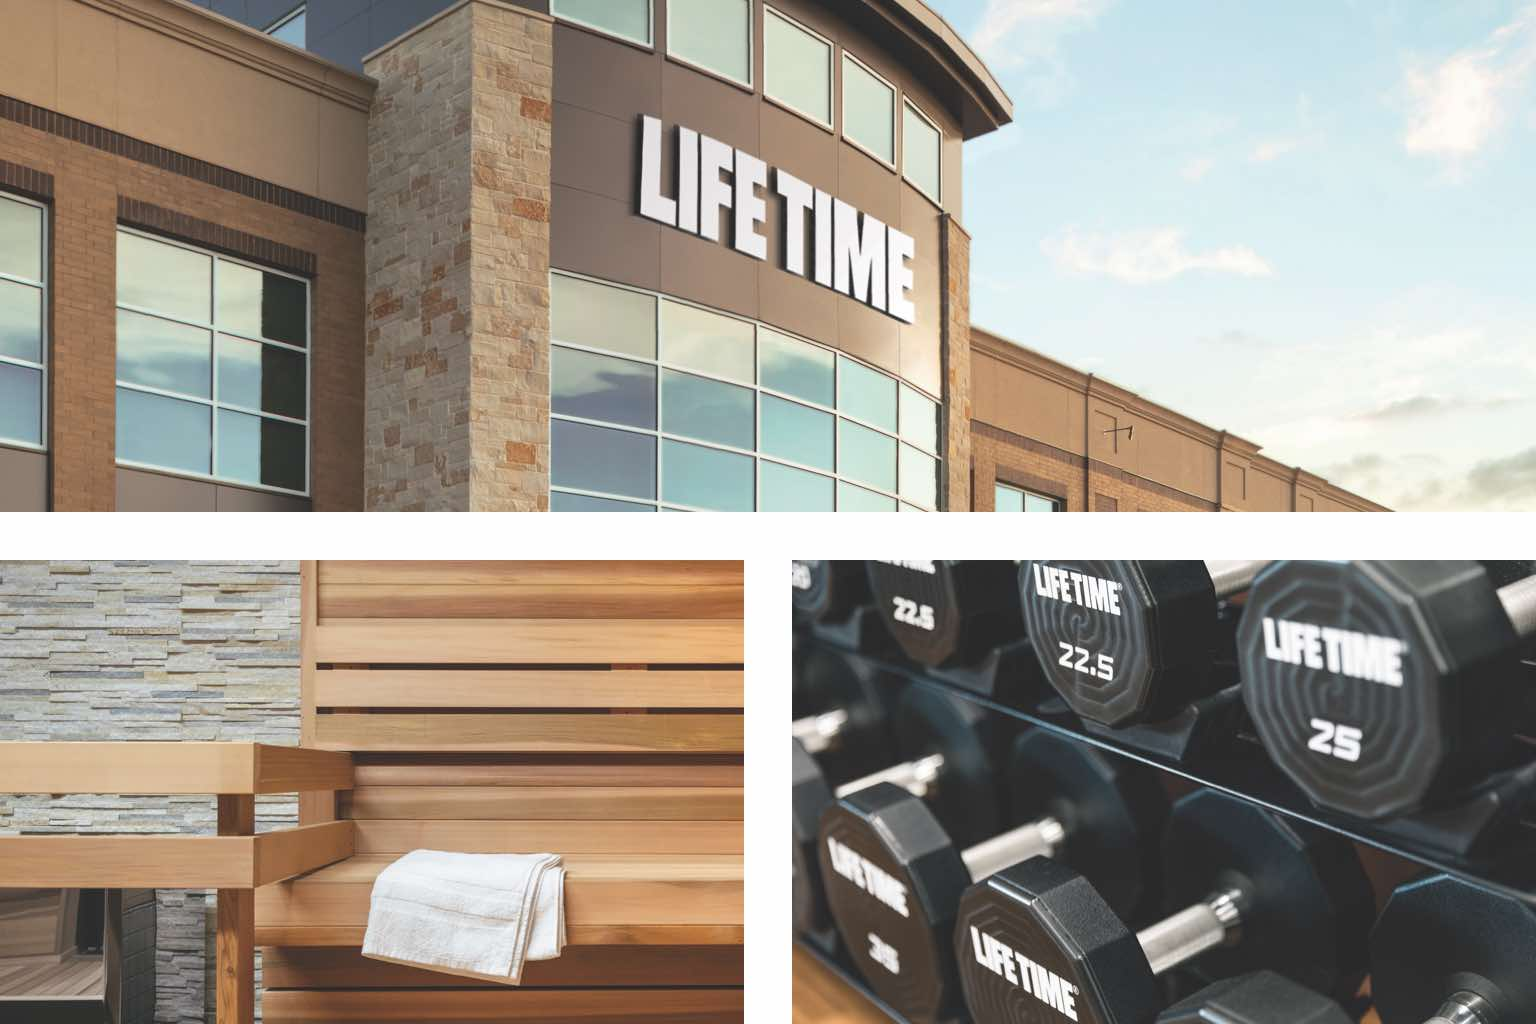 Racks of dumbbells, a sauna and view of the Life Time building exterior